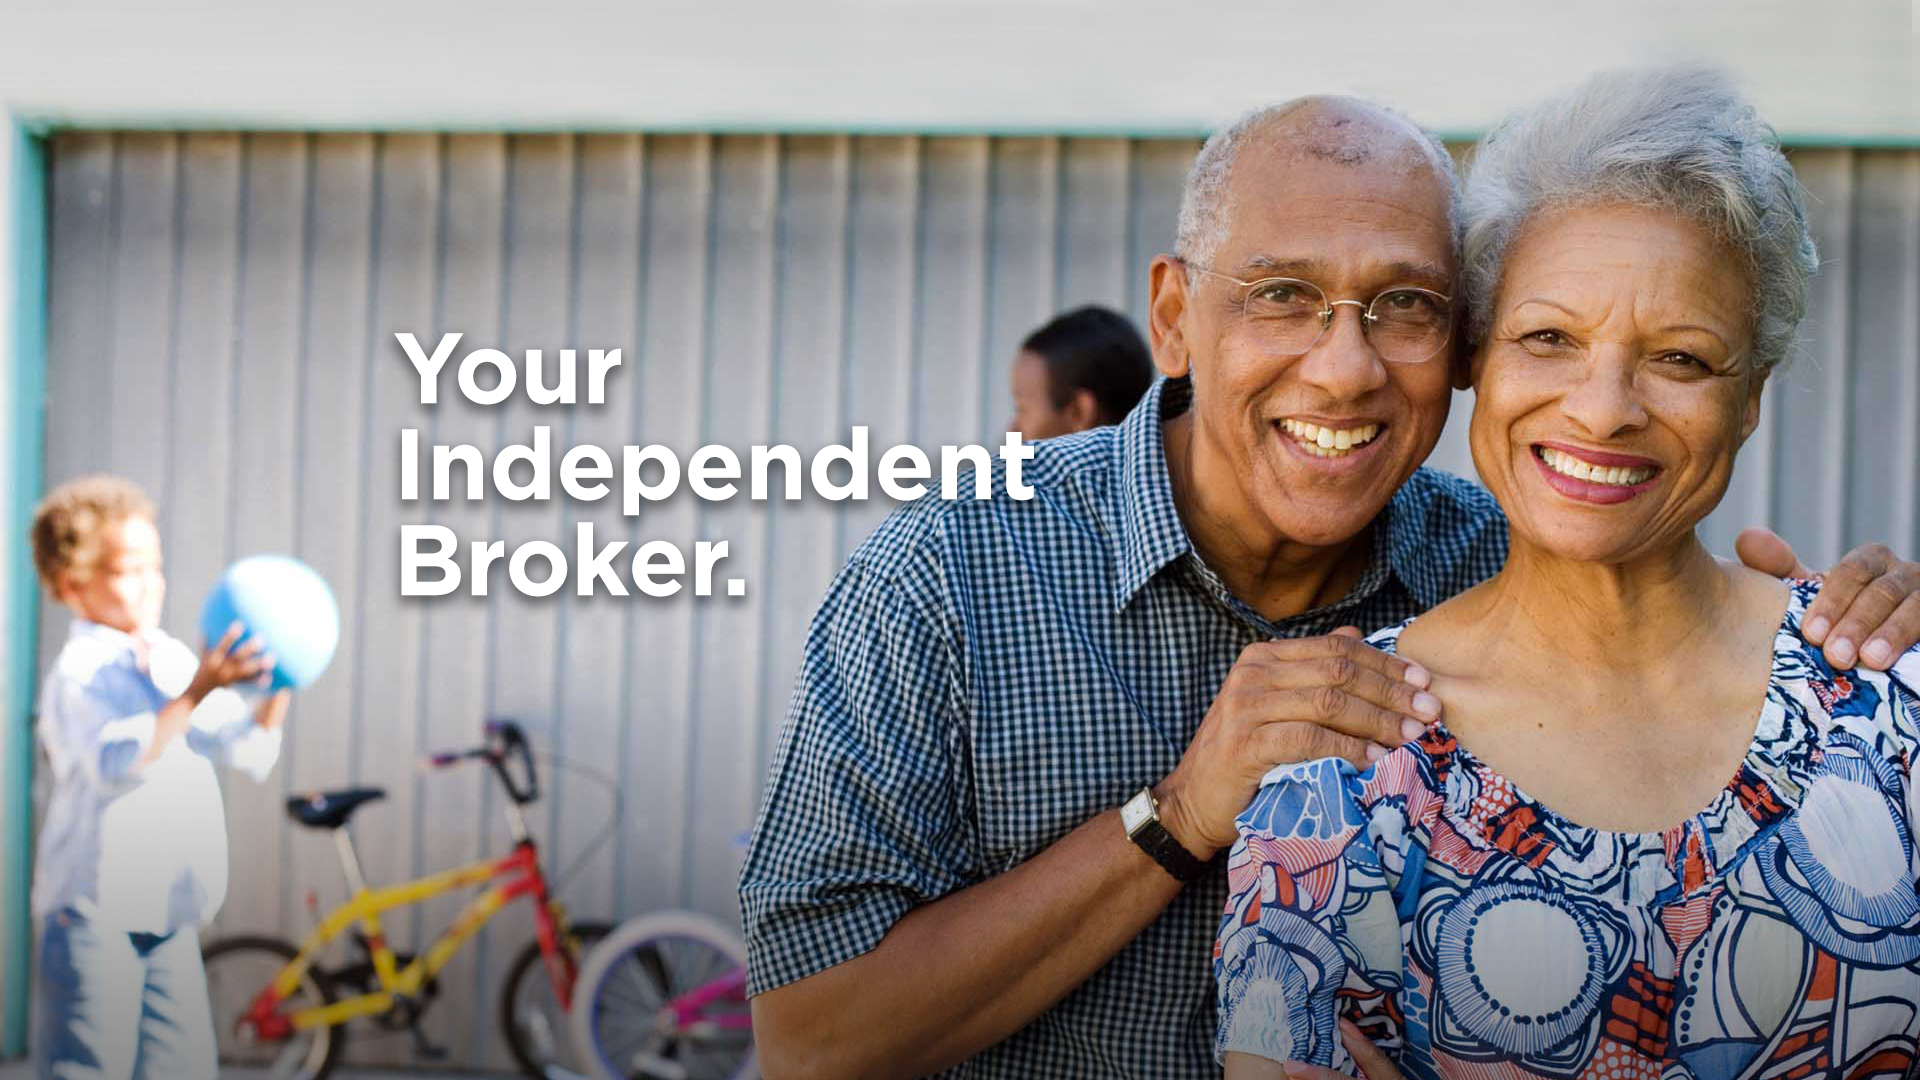 Your independent broker.